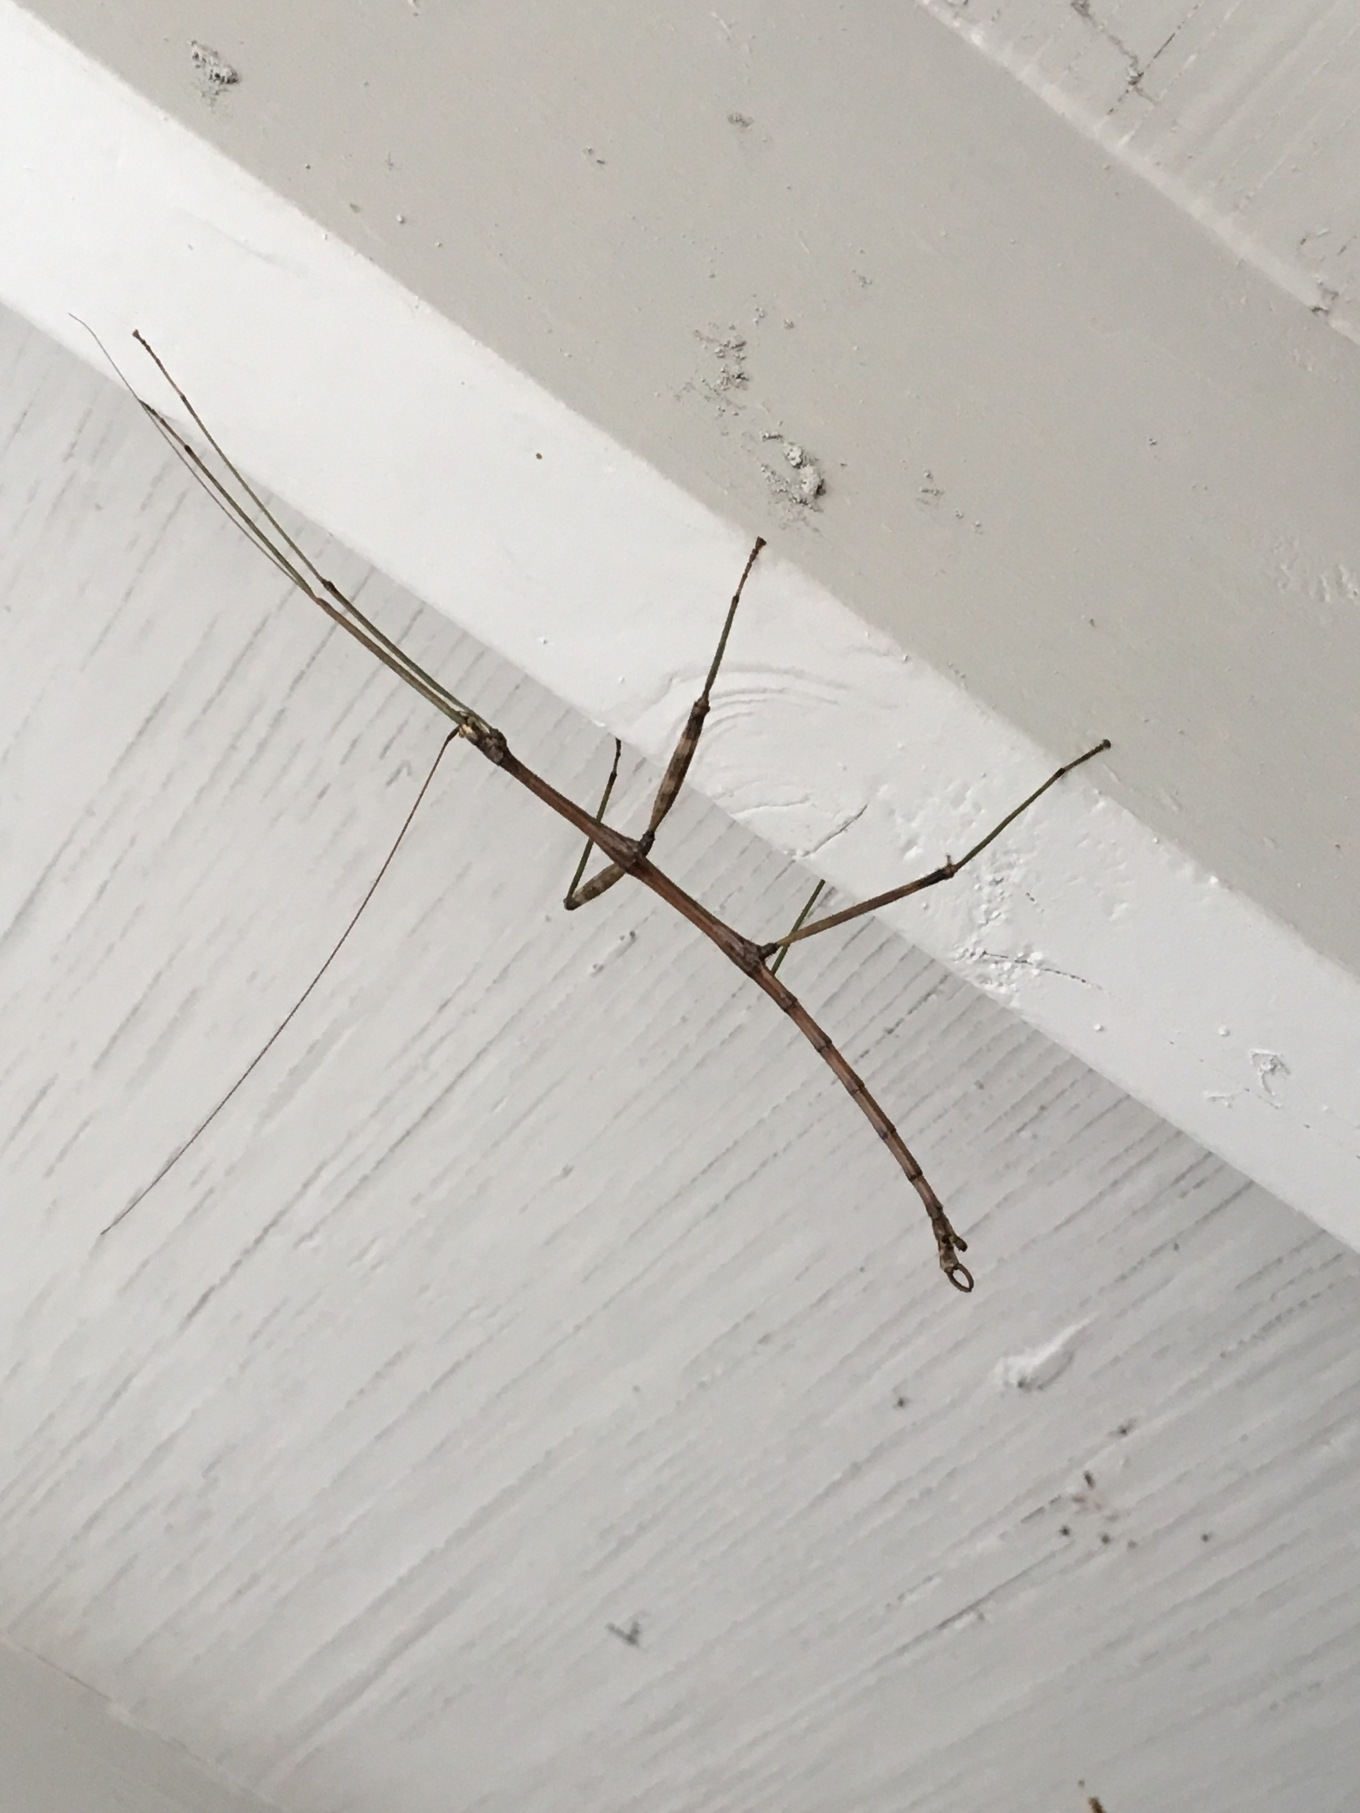 A Stick Bug climbing a wall at Cooper Lake State Park in Texas